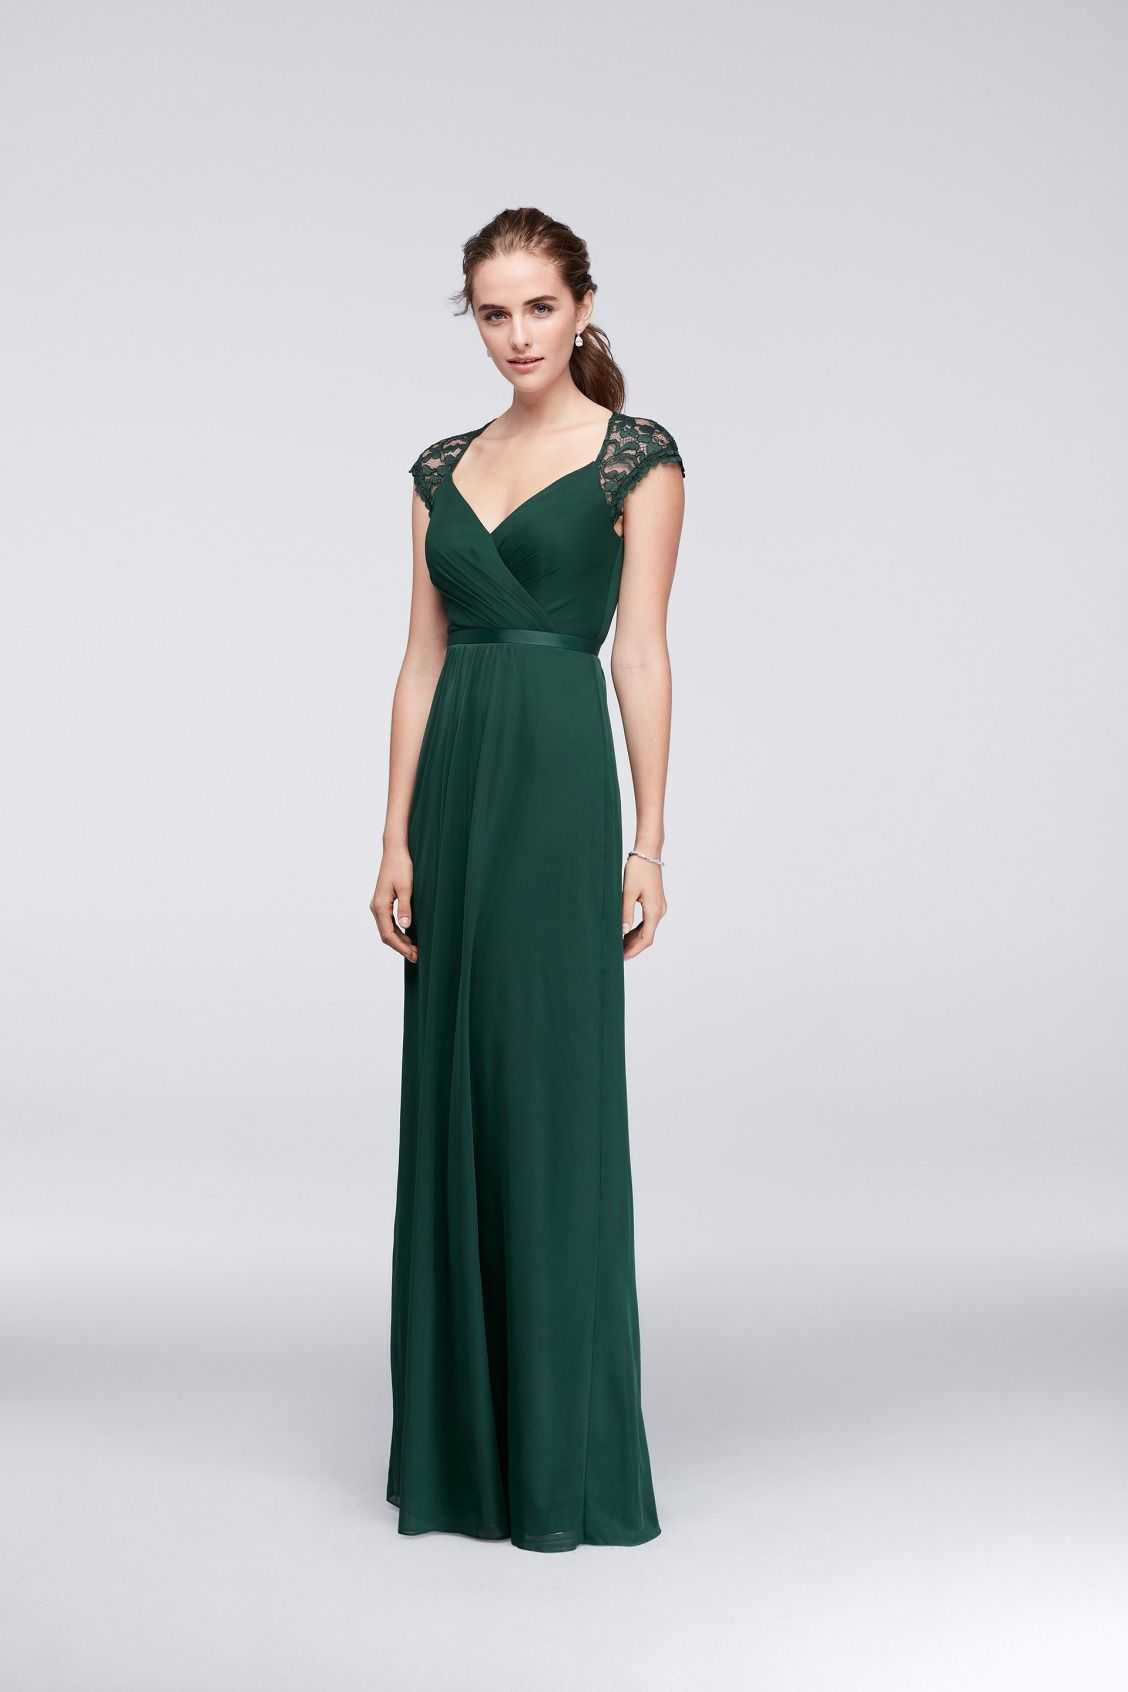 cc9629e332a Juniper Green Long Mesh Bridesmaid Dress with Lace Cap Sleeves and Open  Back by David s Bridal